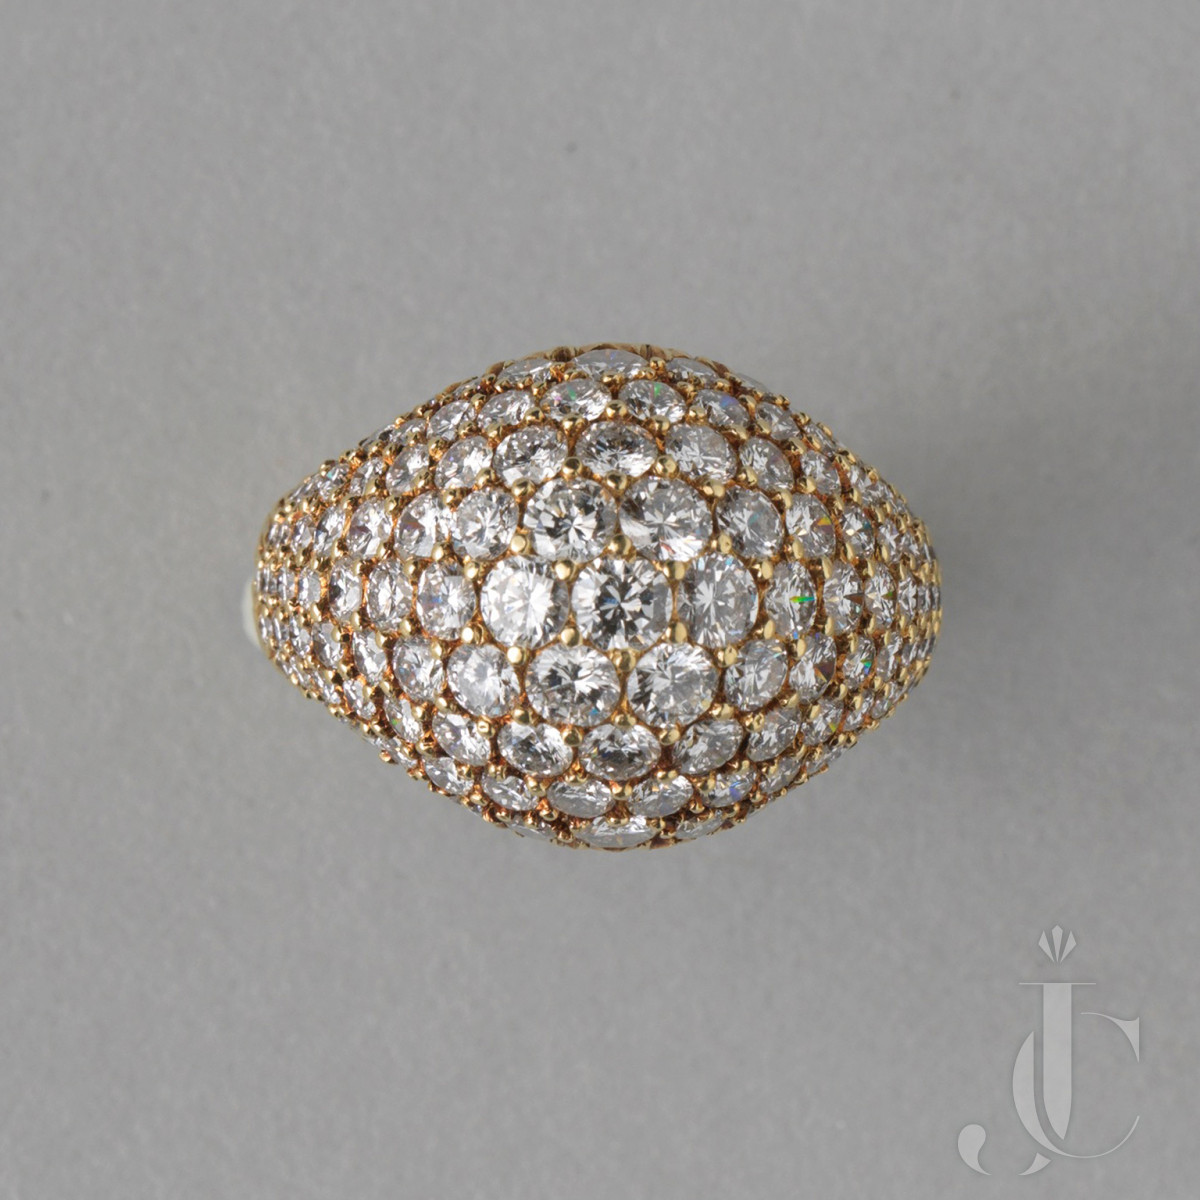 GOLD AND DIAMOND RING BY KURT WAYNE FOR CARTIER